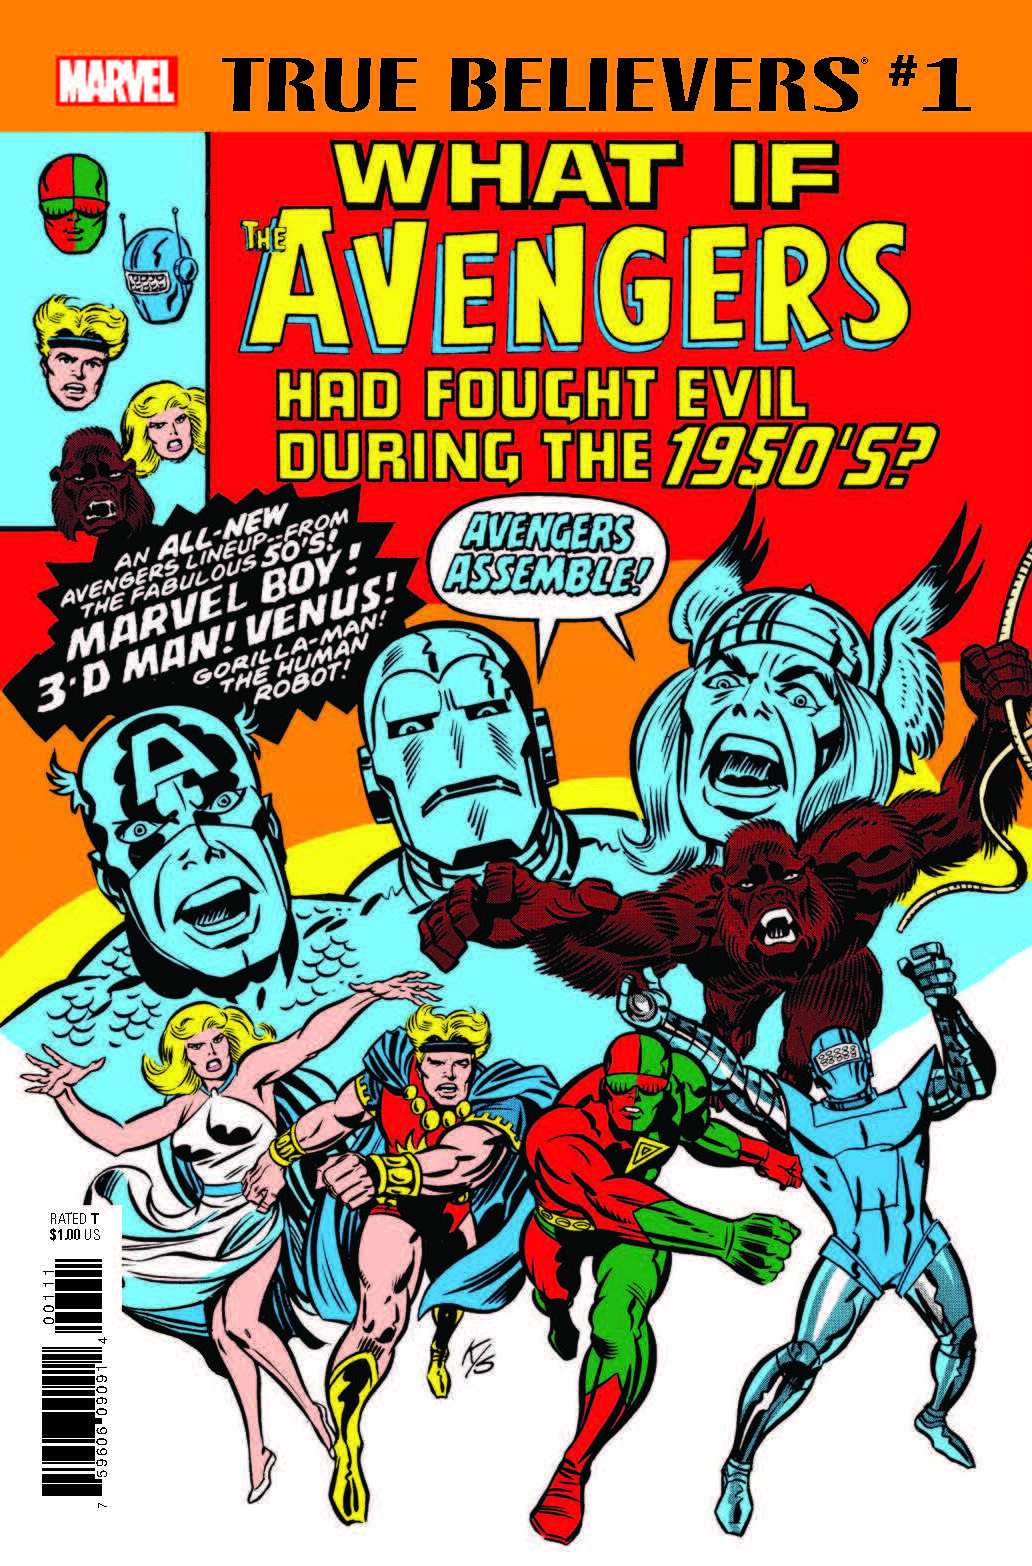 TRUE BELIEVERS: WHAT IF THE AVENGERS HAD FOUGHT EVIL DURING THE 1950S? 1 (2018) #1